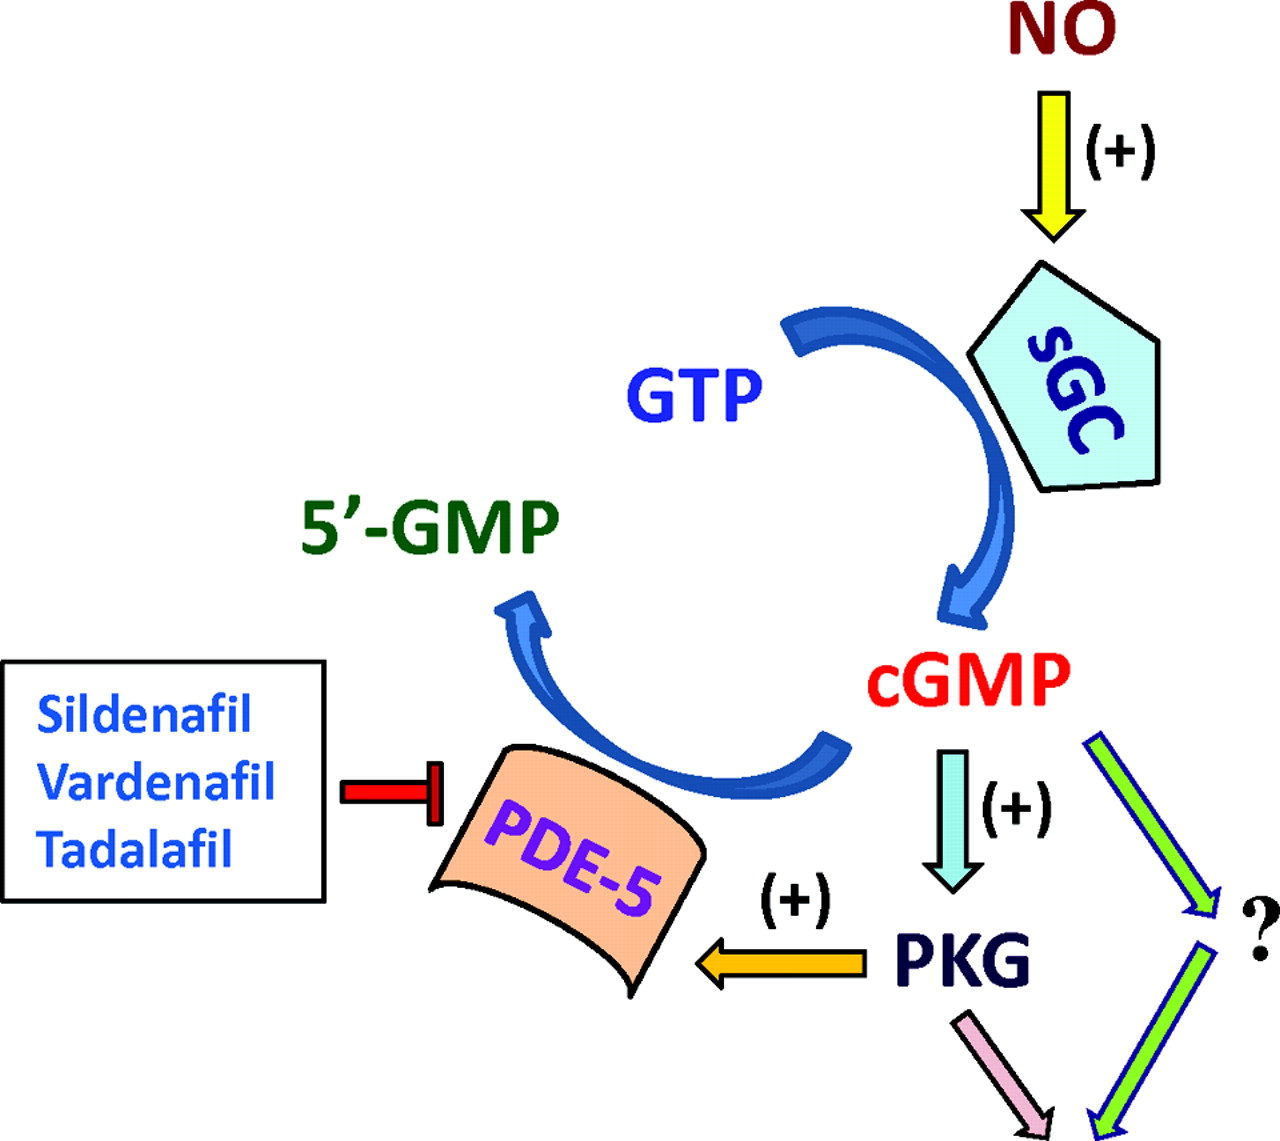 Evidence for Pleiotropic Effects of Phosphodiesterase-5 (PDE5) Inhibitors: Emerging Concepts in Cancer and Cardiovascular Medicine | Circulation Research